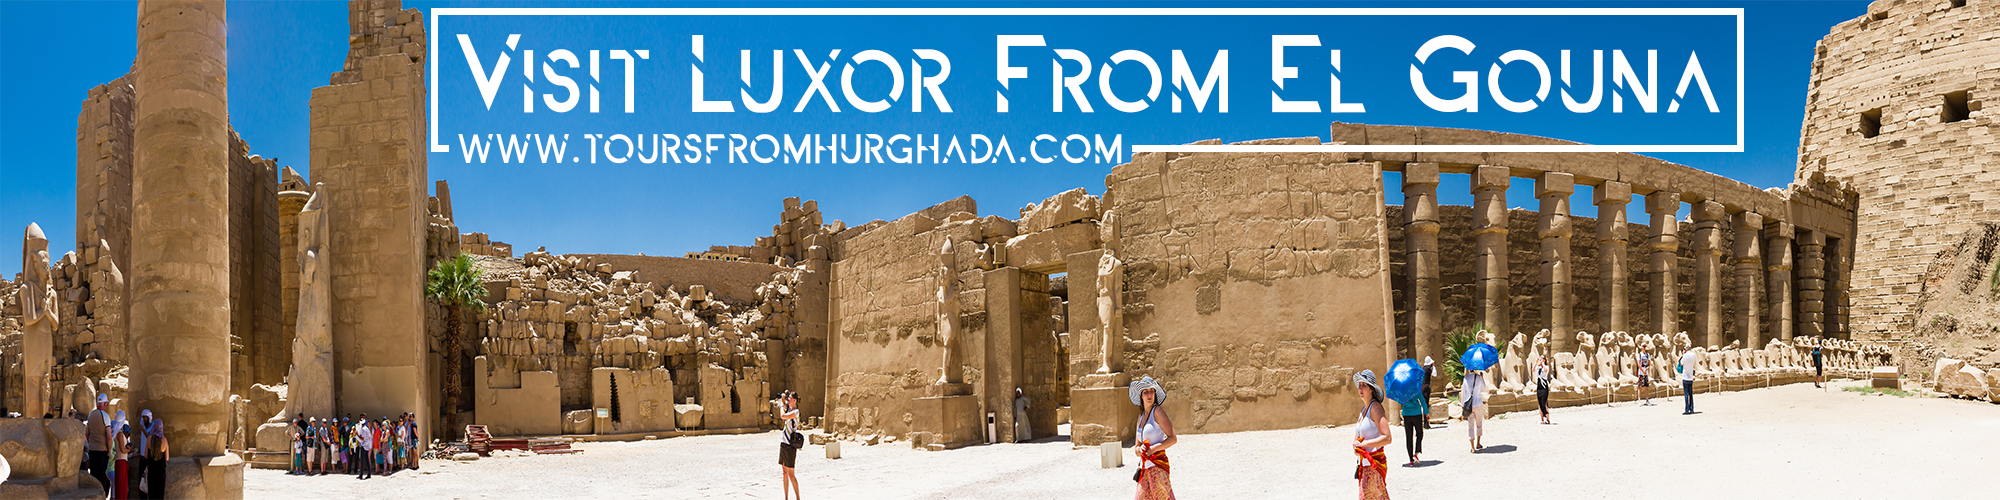 Trips to Luxor from El Gouna ToursFromHurghada